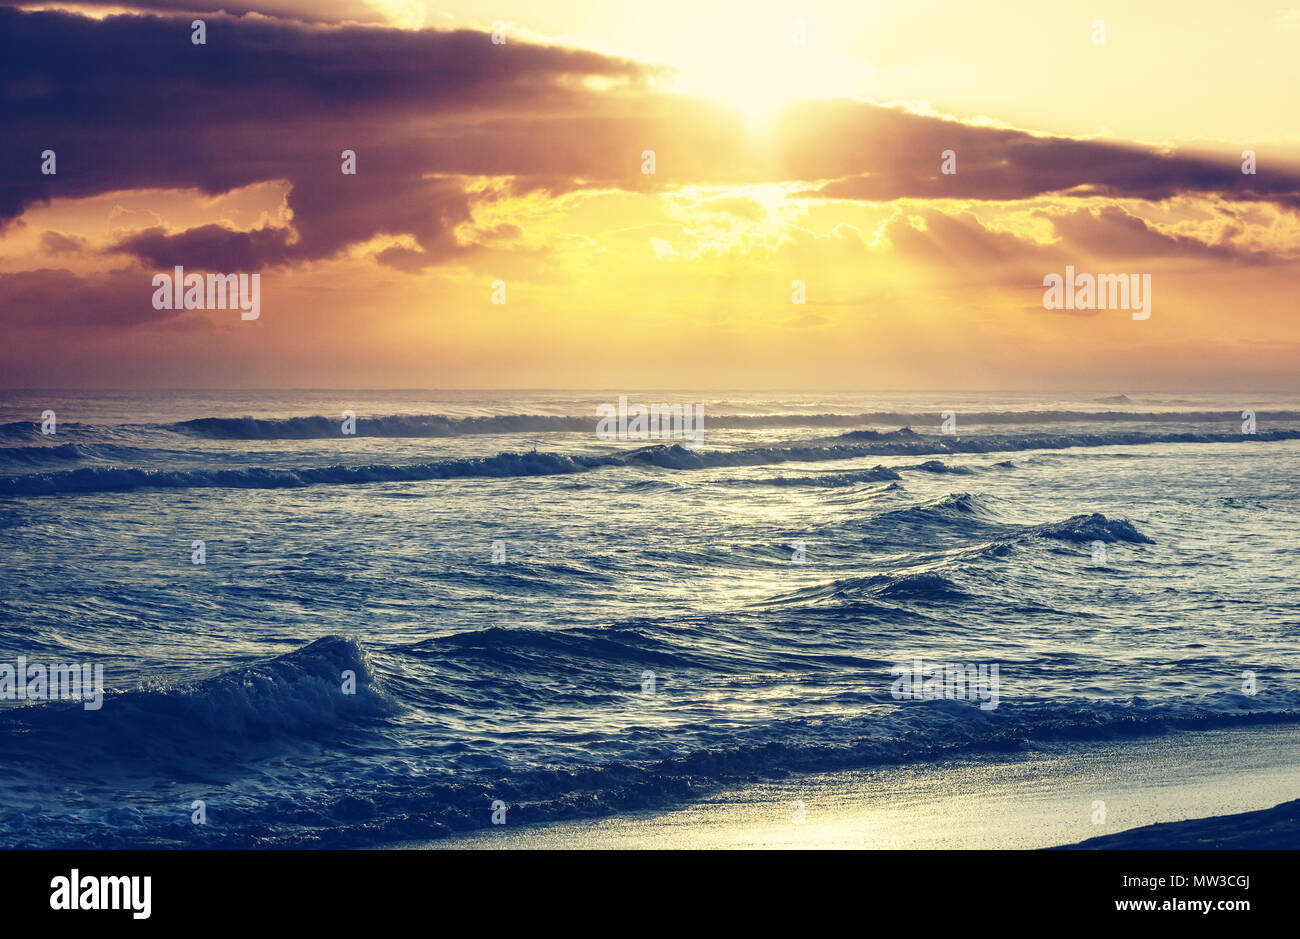 scenic colorful sunset at the sea coast. good for wallpaper or